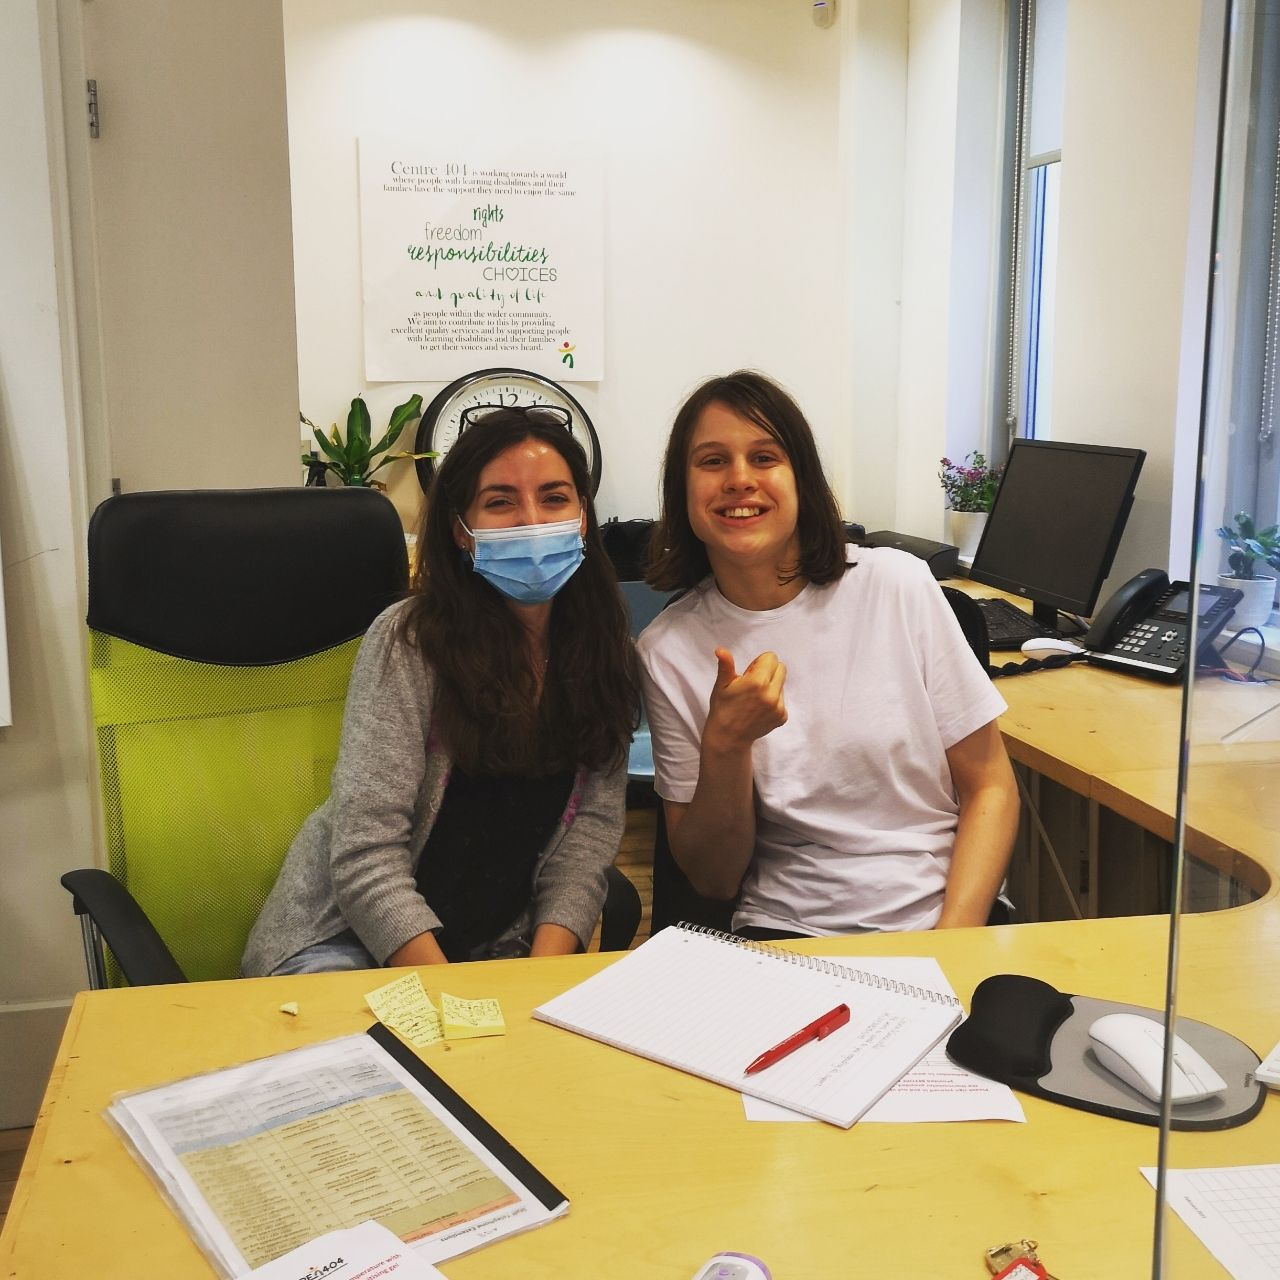 Photo shows our volunteer Judith and our Receptionist Alexa smiling on reception.